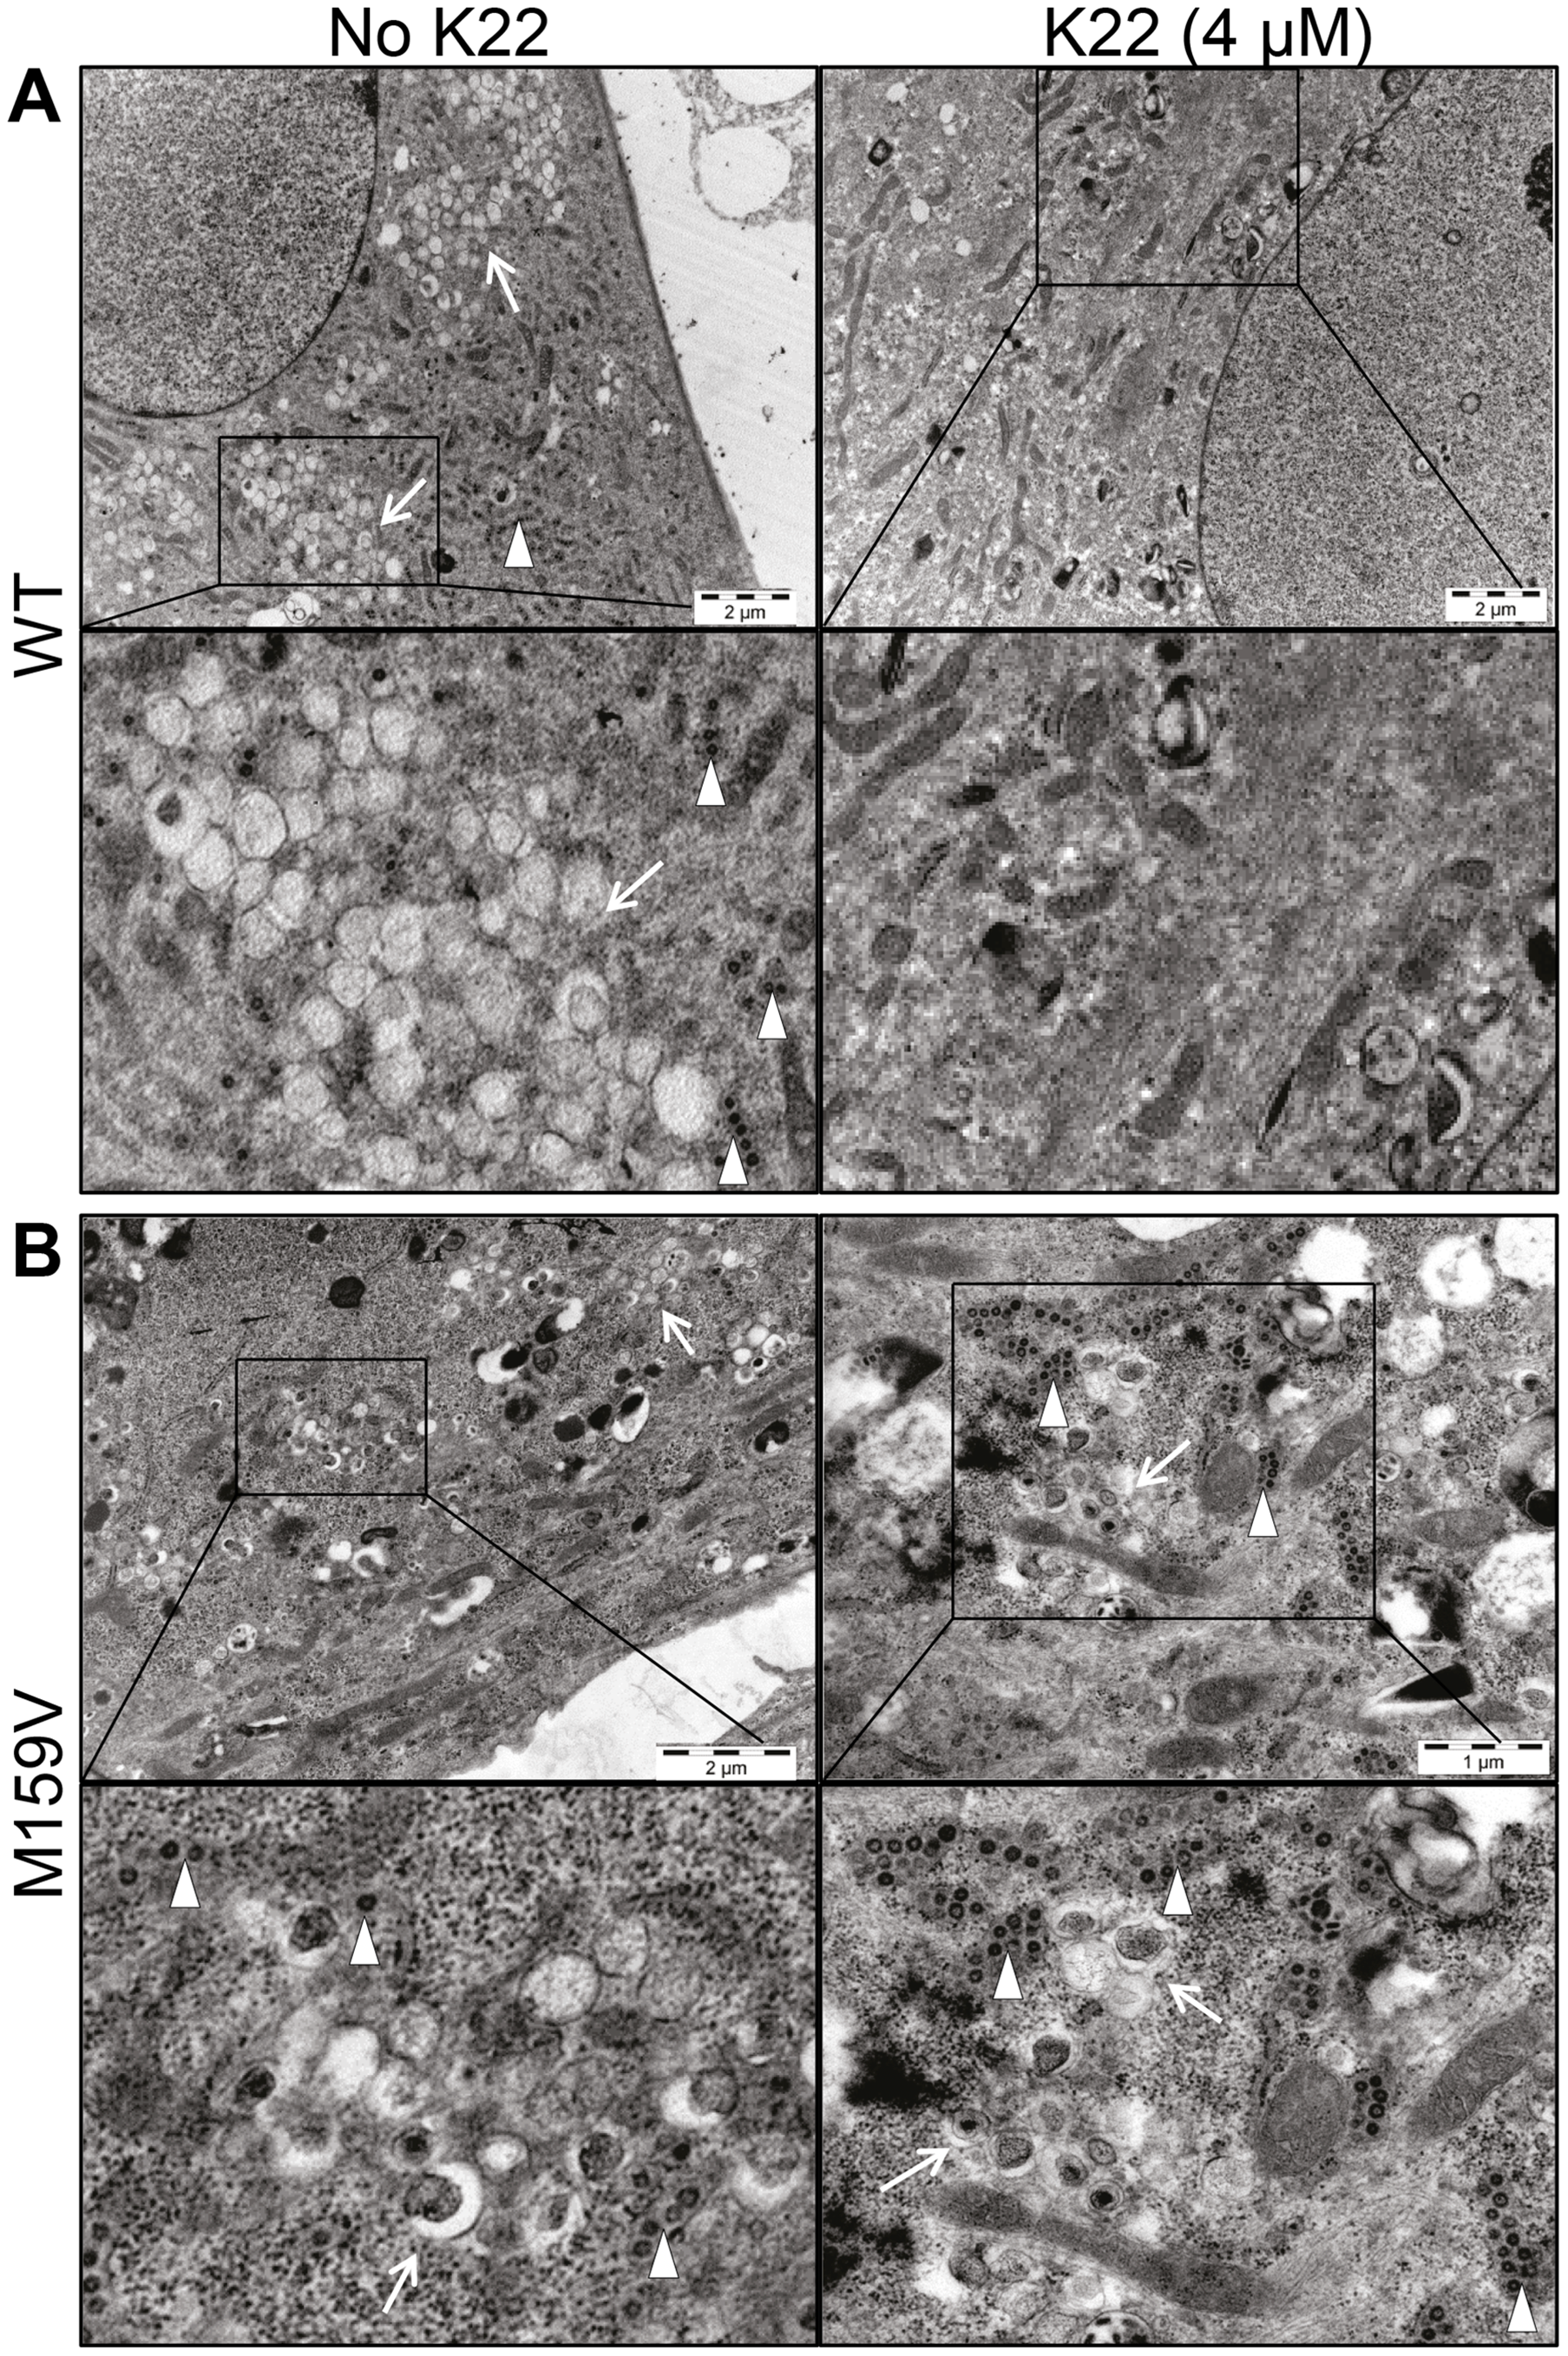 K22 affects formation of double membrane vesicles (DMVs).